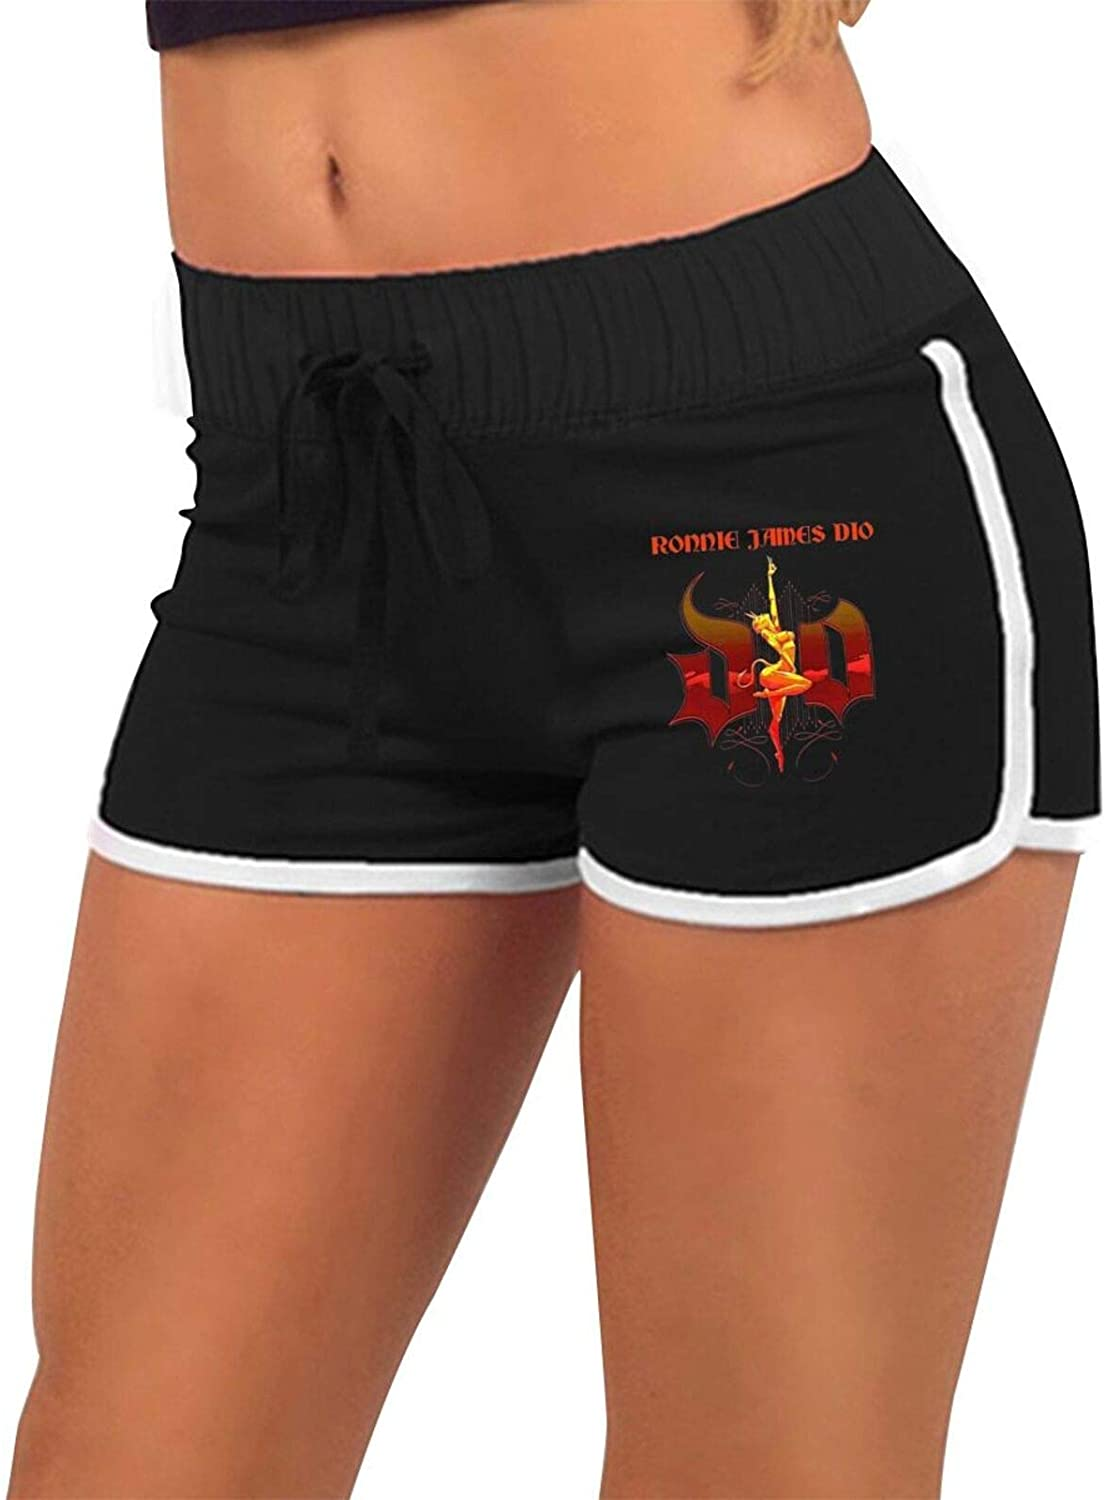 Ronnie James Dio Women's Workout Yoga Low Waist Hot Pants- Cheerleader Dance Volleyball Short Pants Black